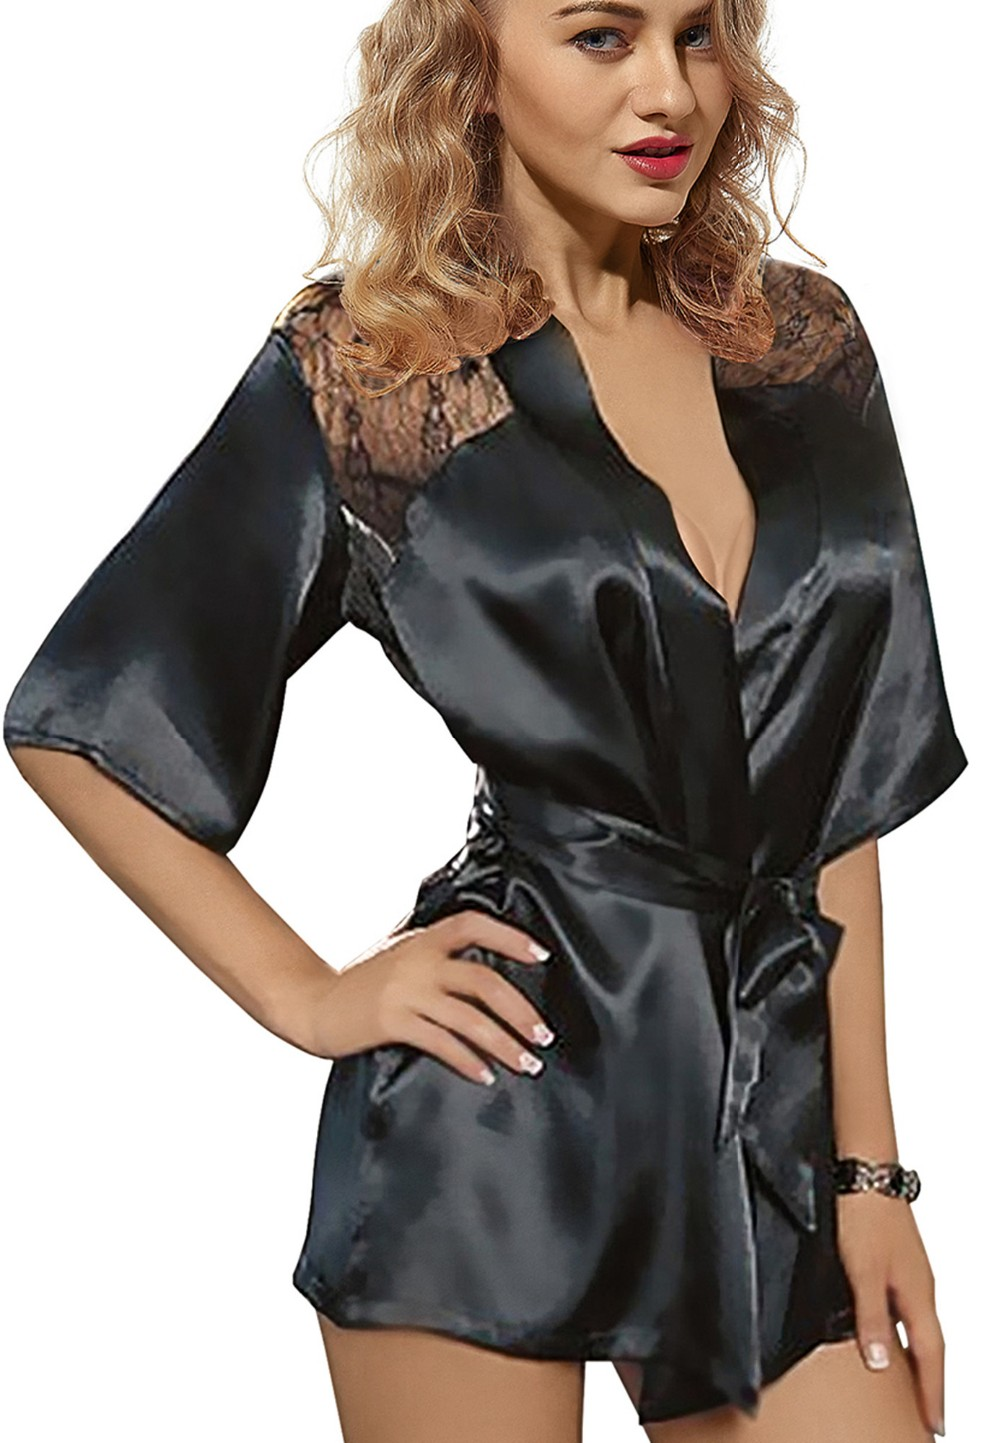 ᗚnew sexy lingerie satin lace back style ladies robes night gown